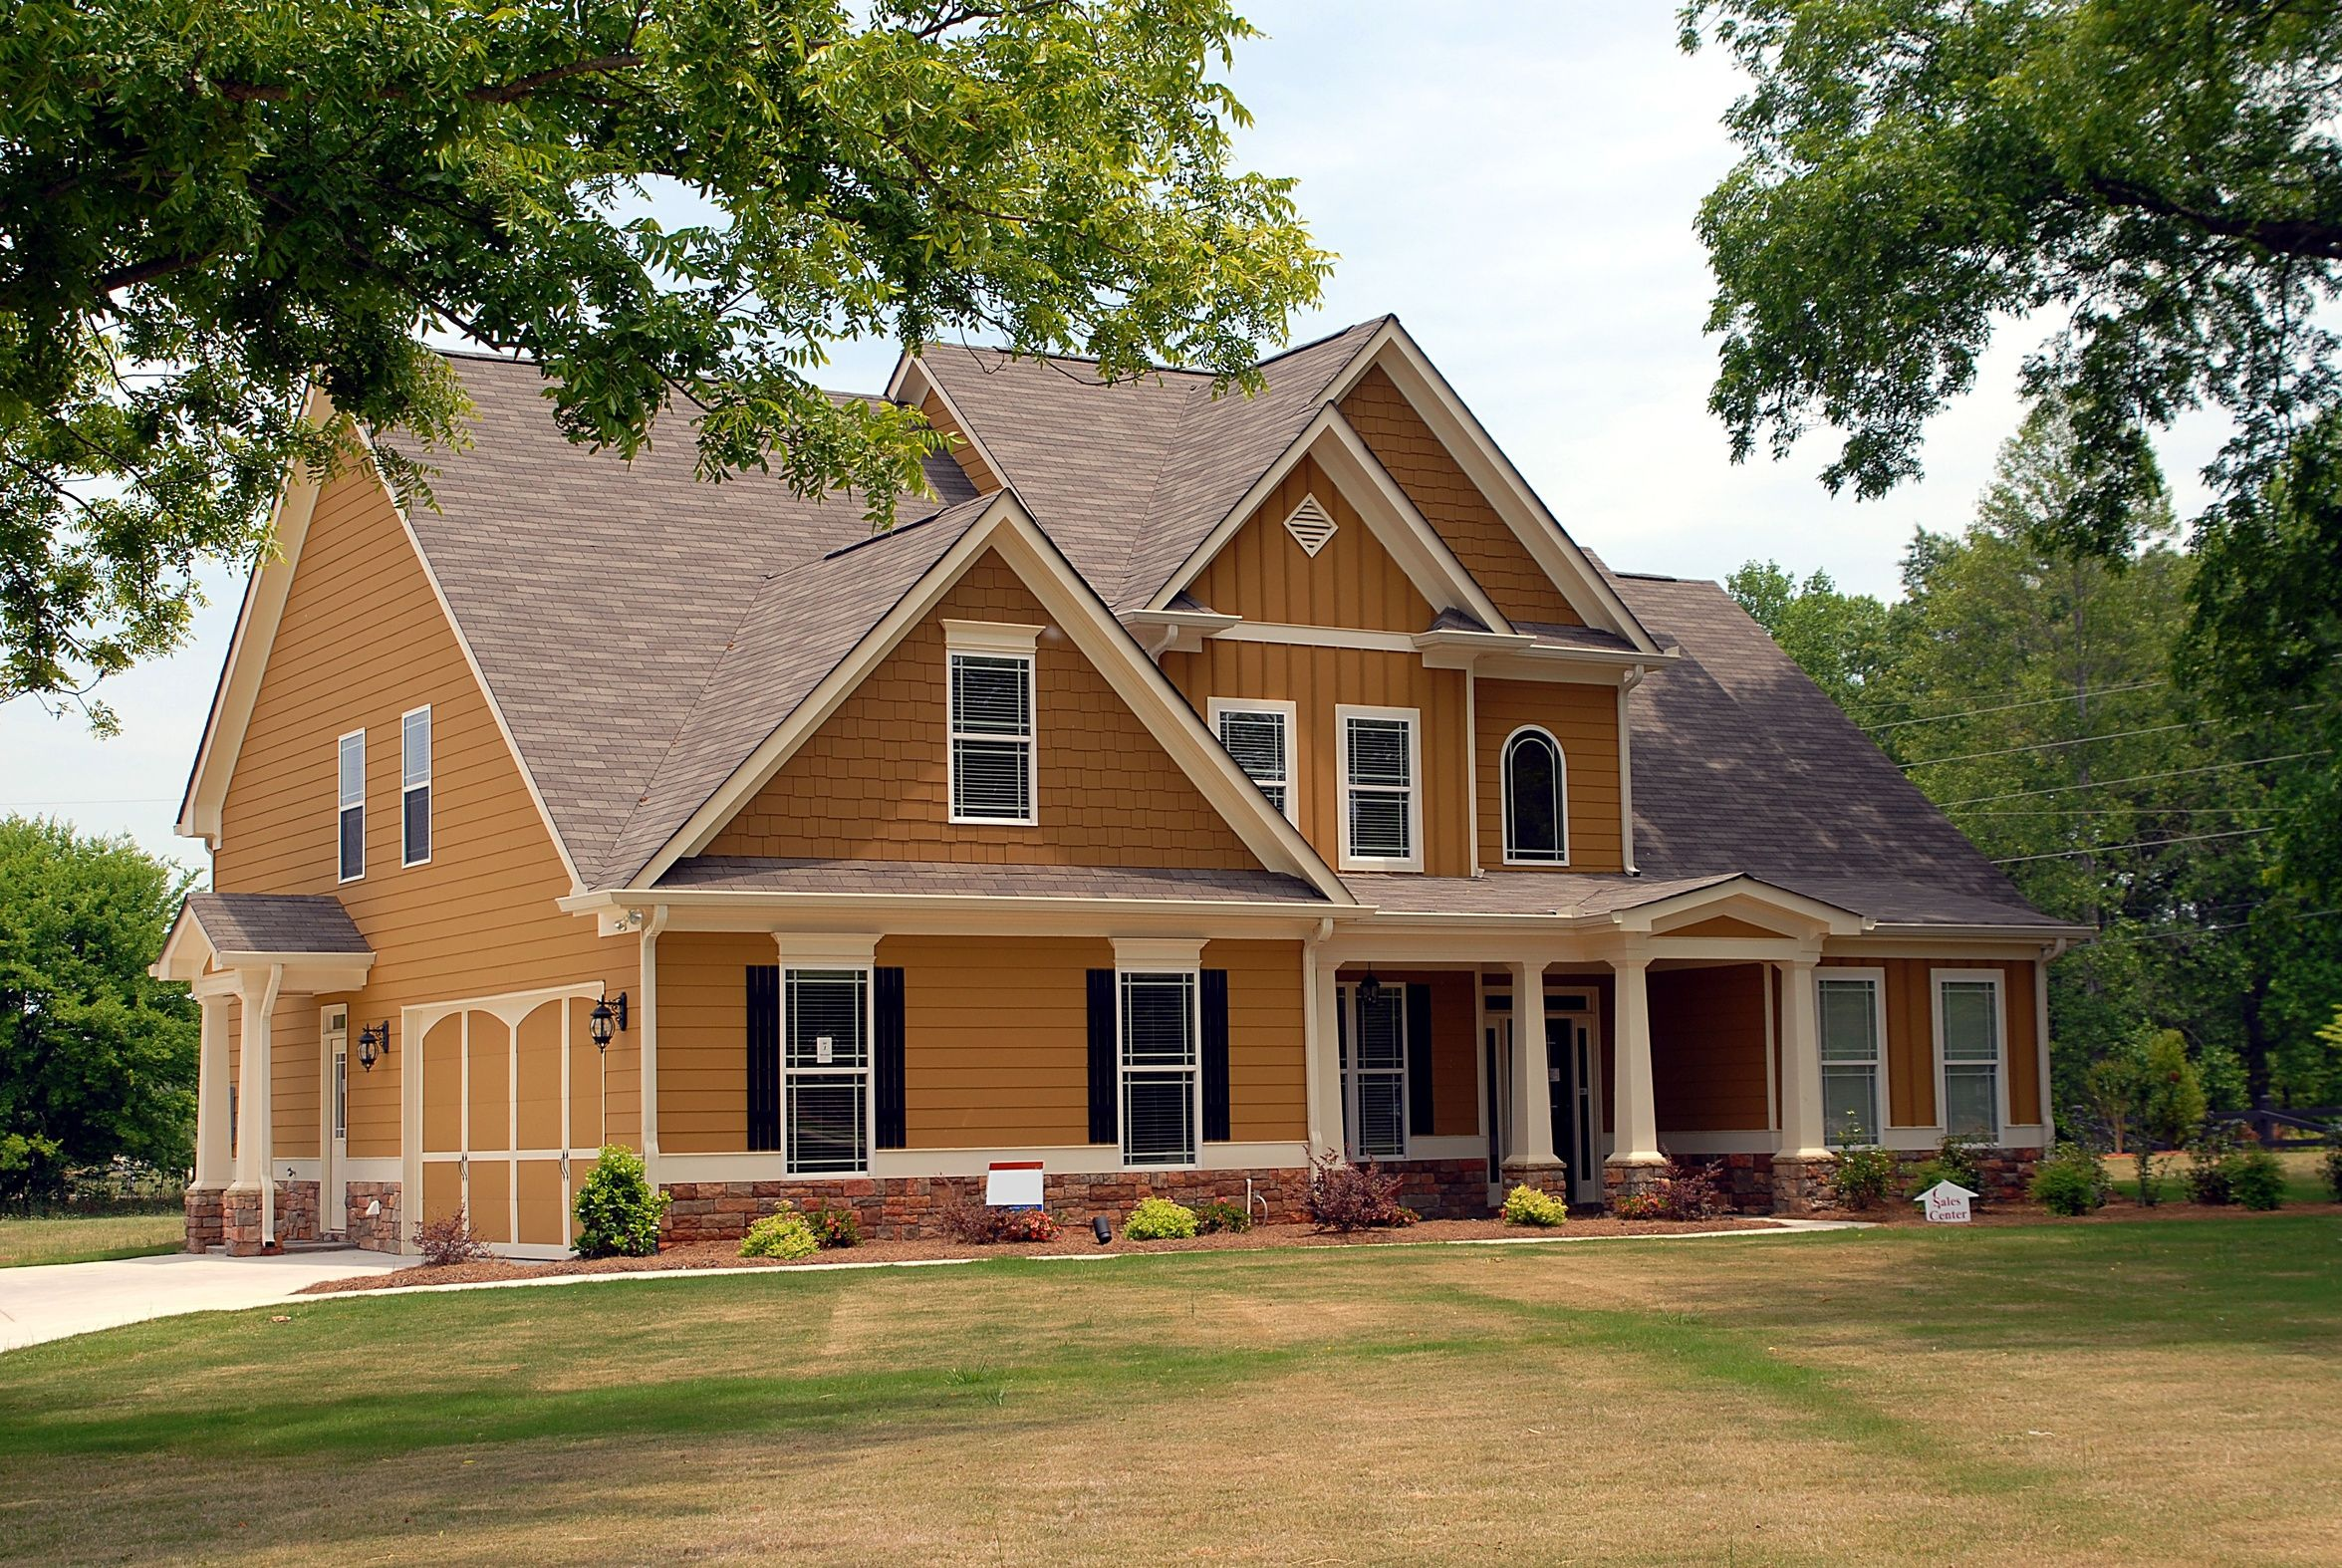 Brown exterior house paint colors looking for professional house painting in stamford ct Brown exterior house paint schemes